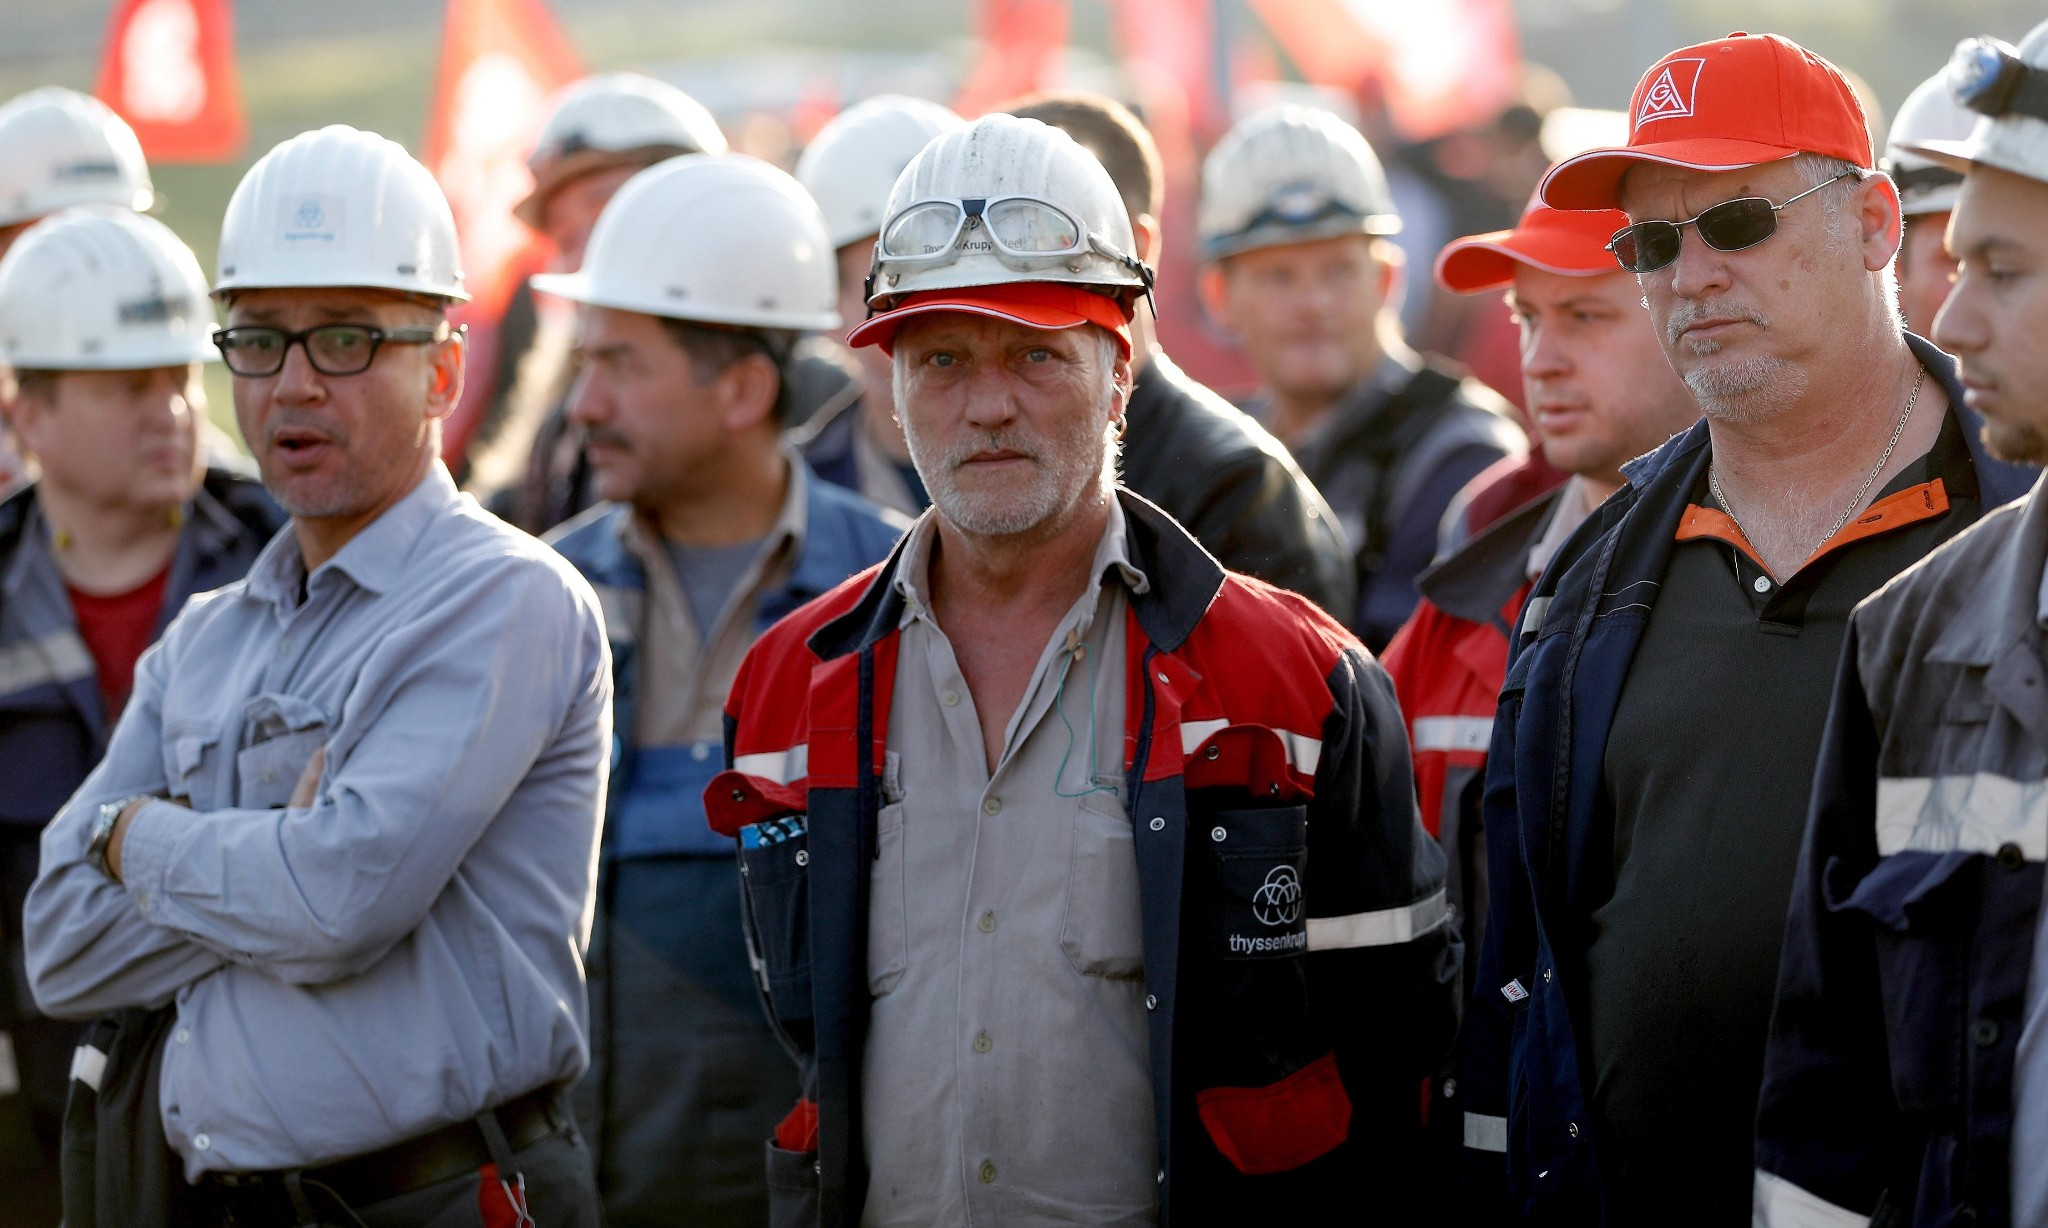 Steelworkers face huge pension cuts as Tata completes merger